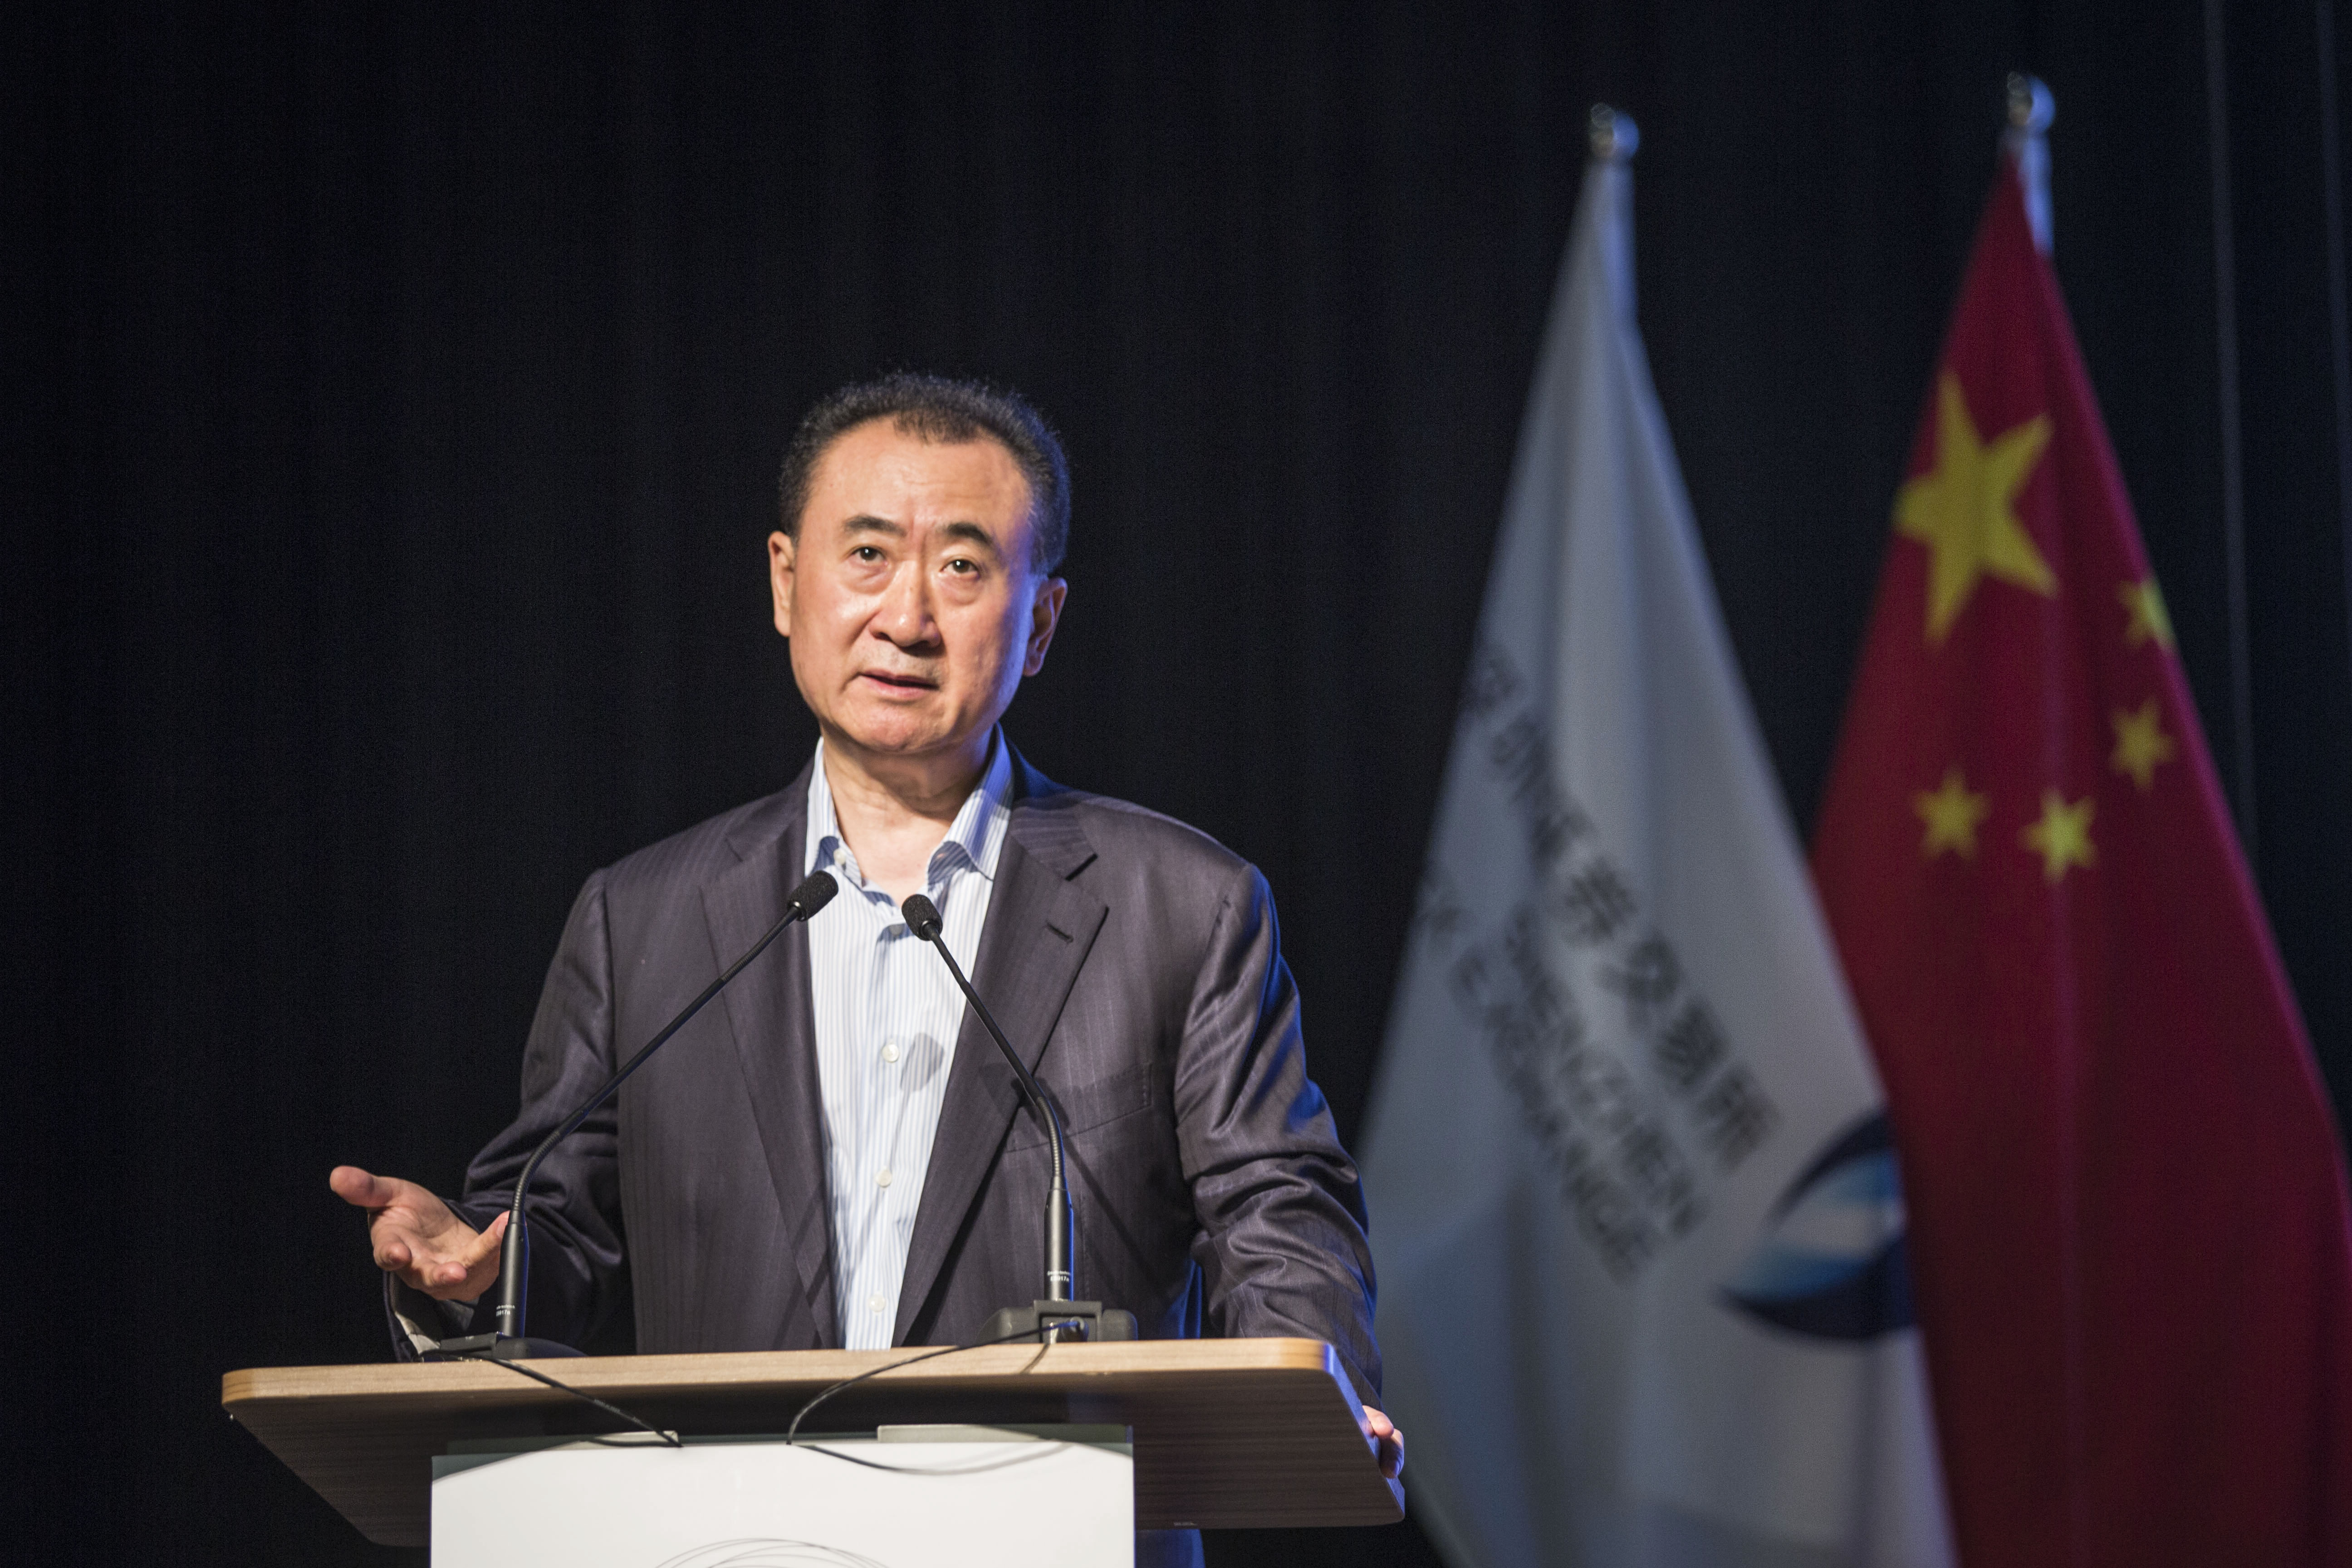 Lecture on 'Asset-Light' by Wang Jianlin at Shenzhen Stock Exchange